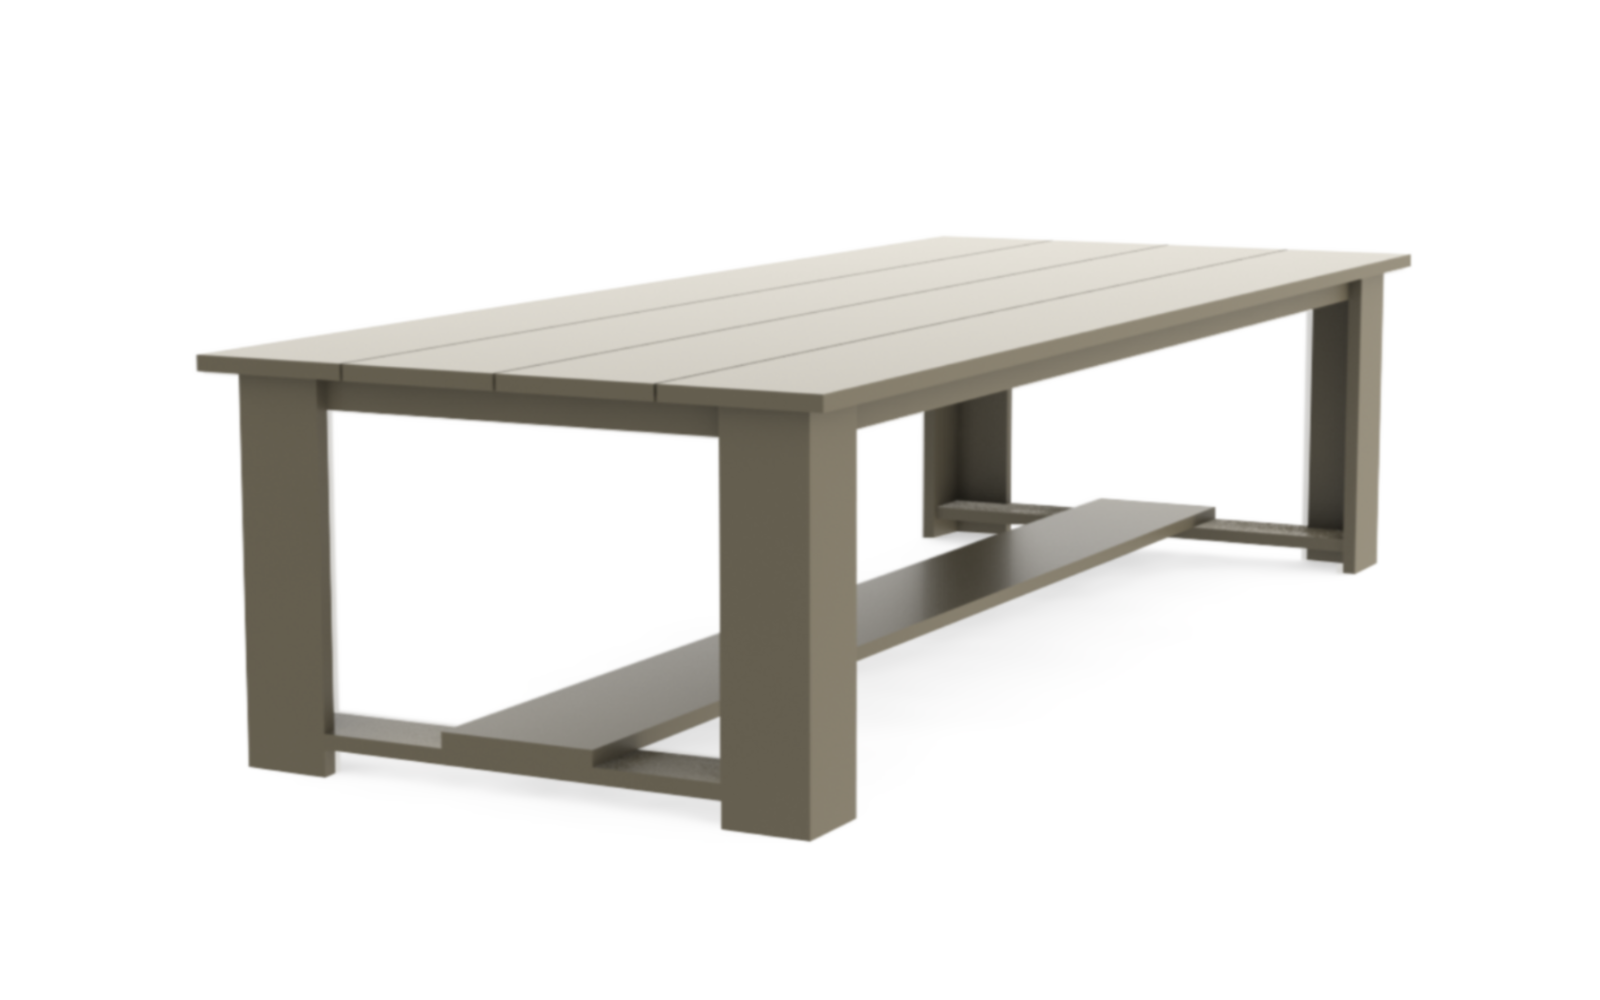 MaikelsDesign custom garden table shown at an angle